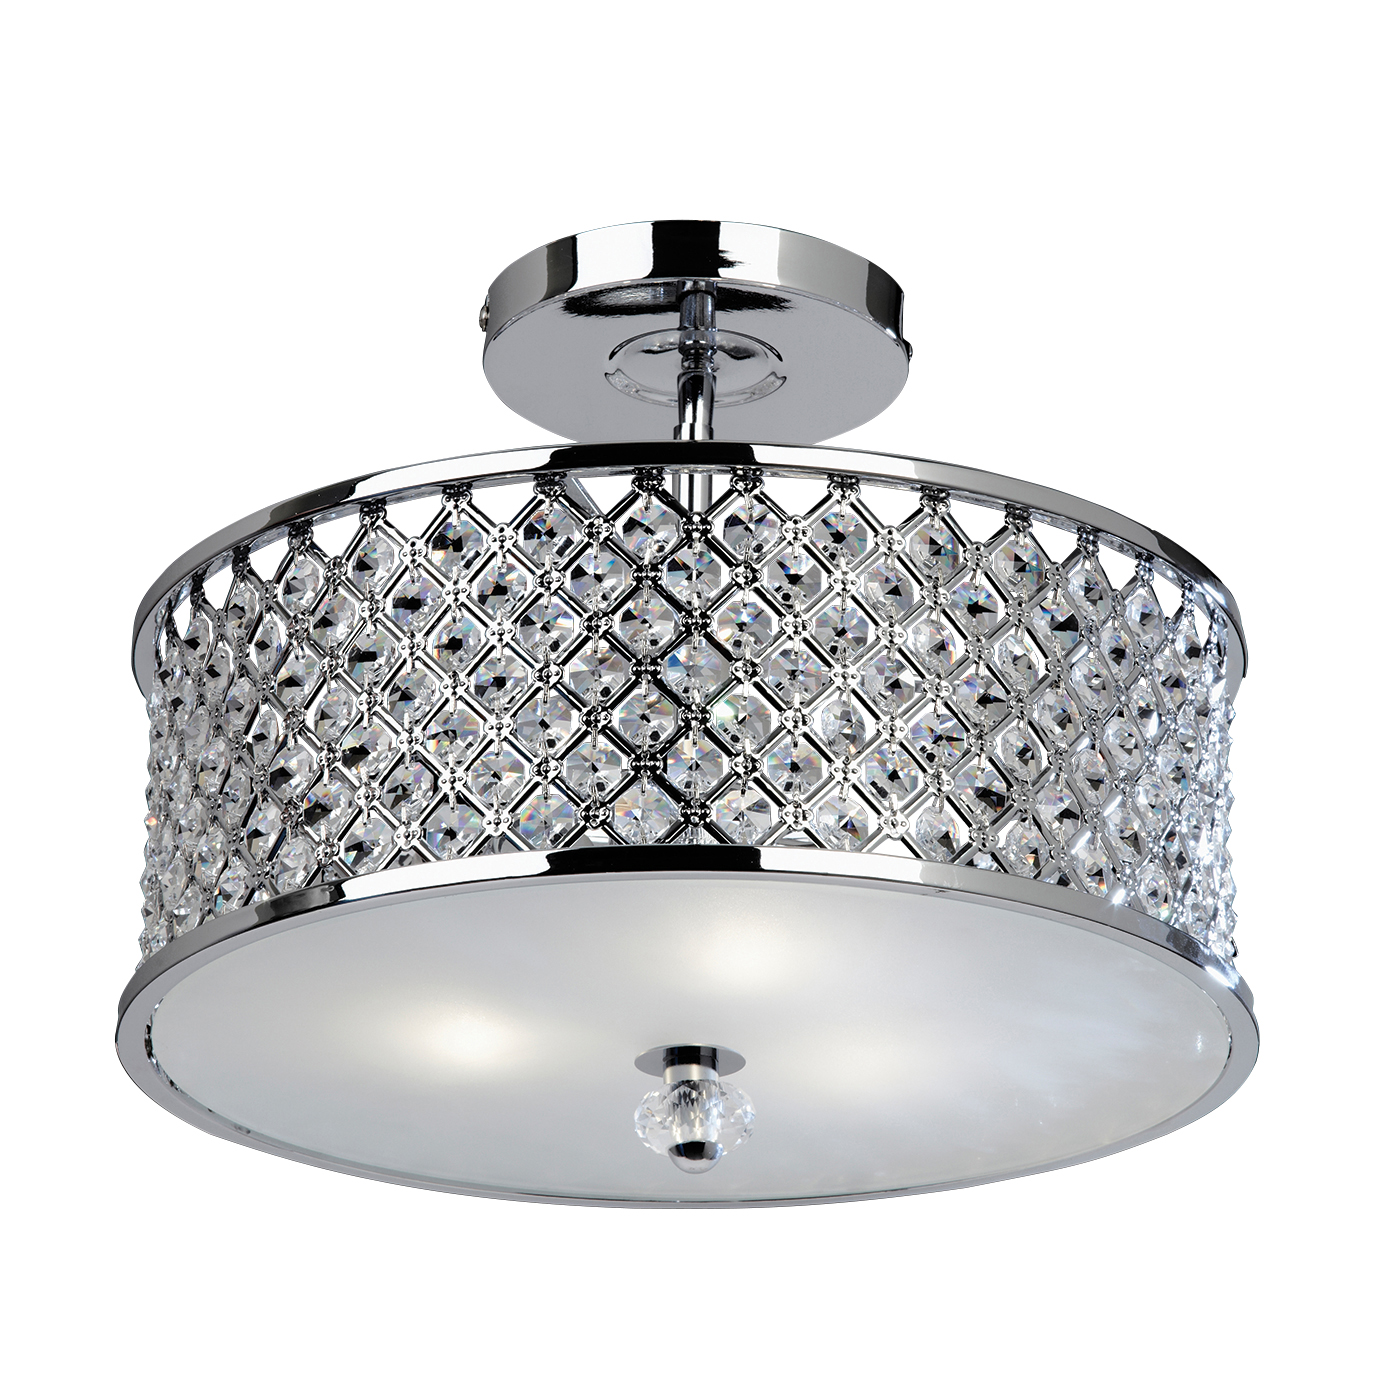 Endon Hudson flush ceiling light 3x 60W Chrome effect & clear crystal (k9) drops Thumbnail 1